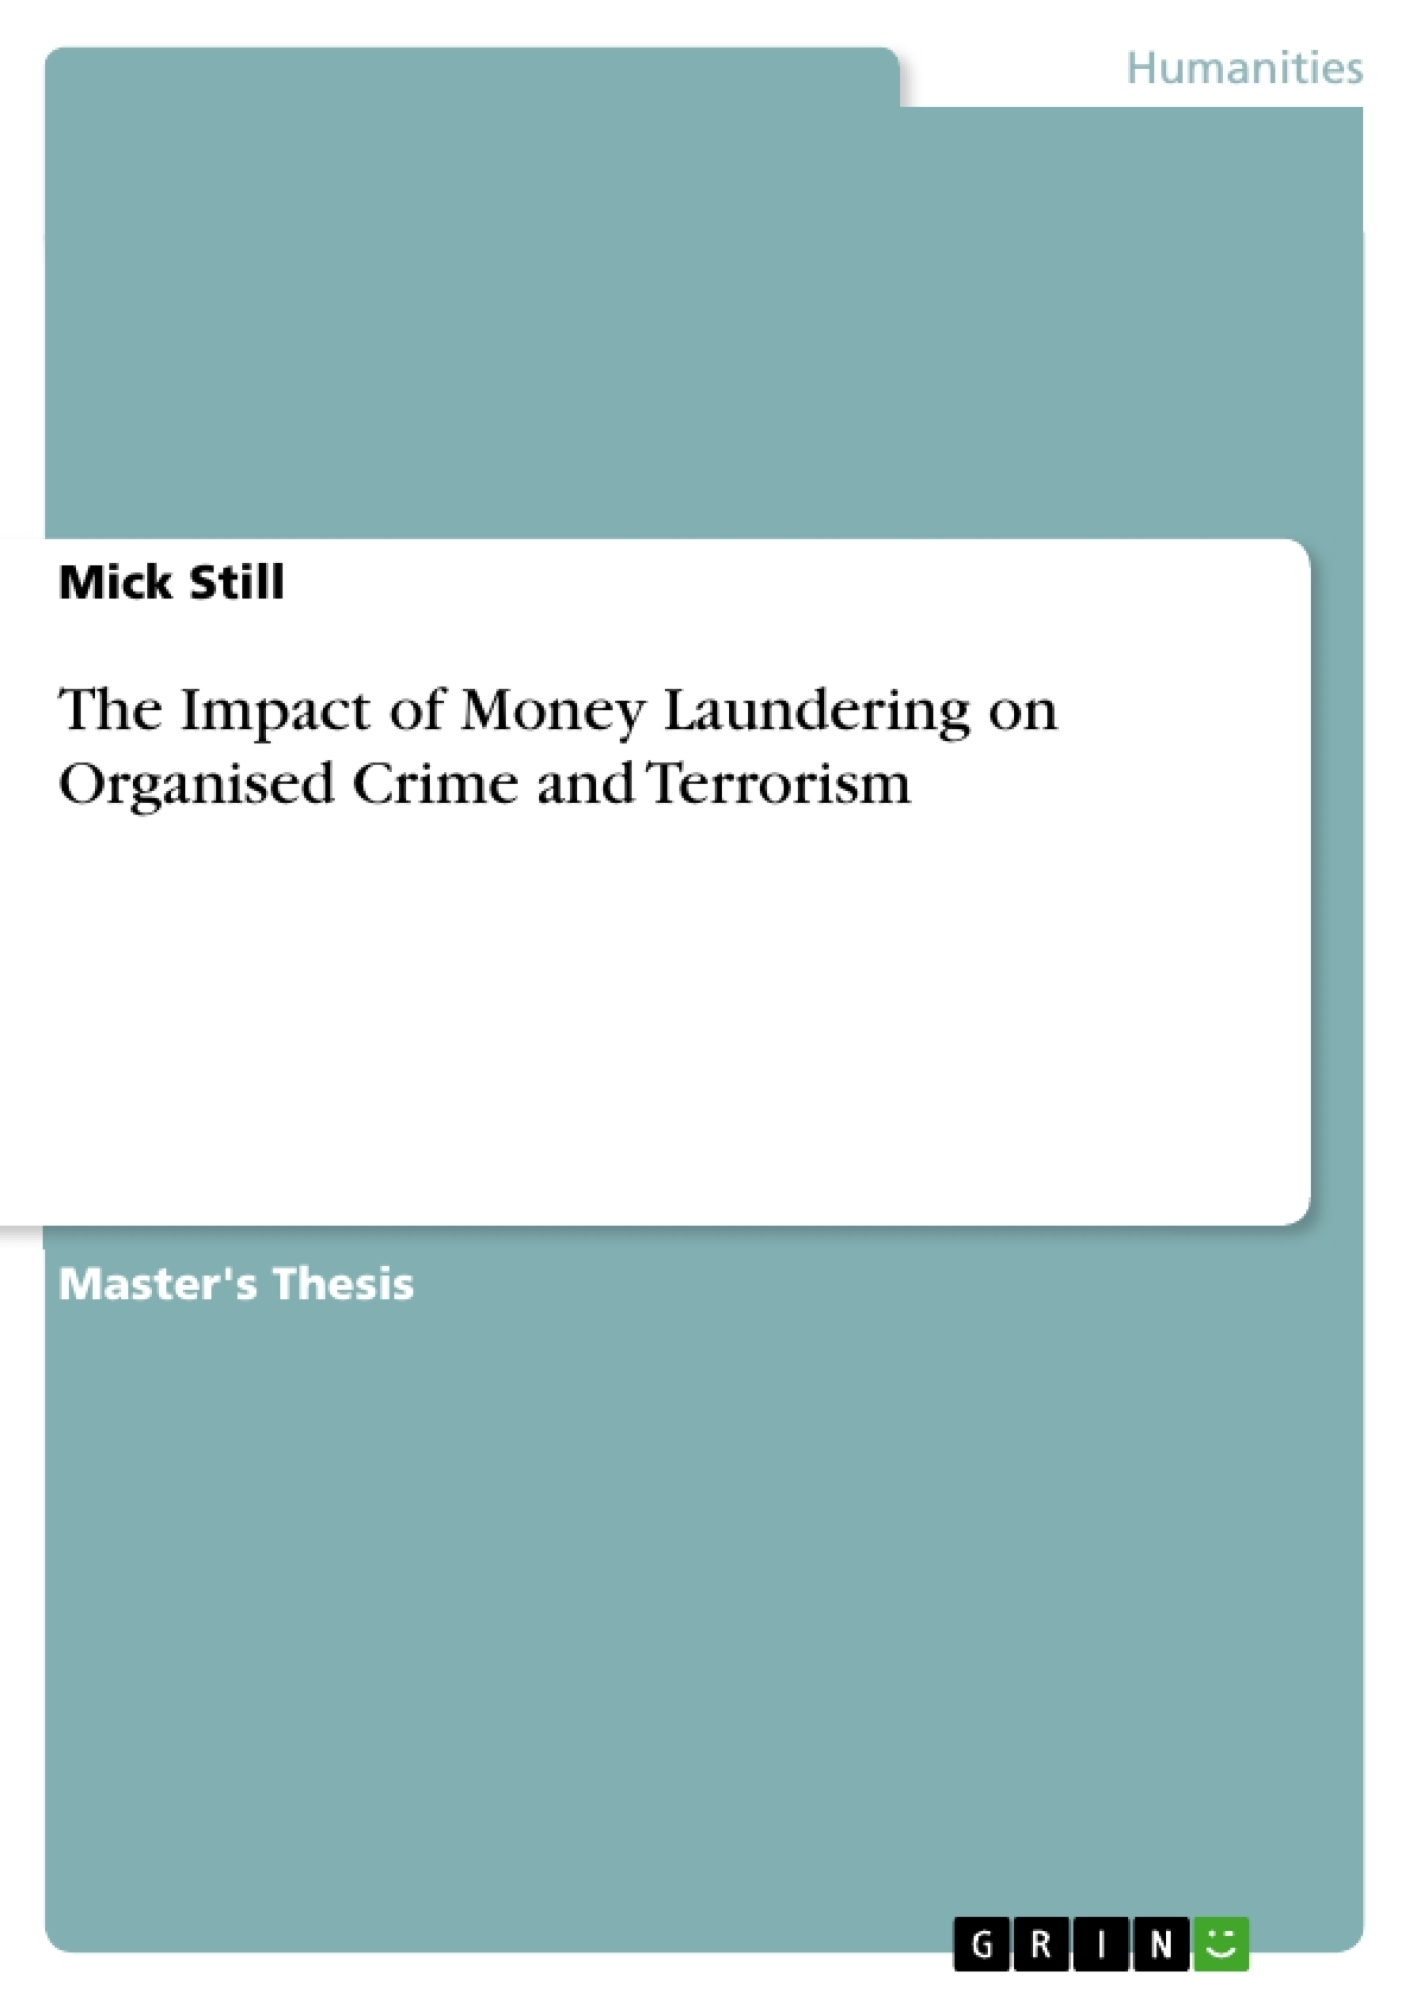 Title: The Impact of Money Laundering on Organised Crime and Terrorism